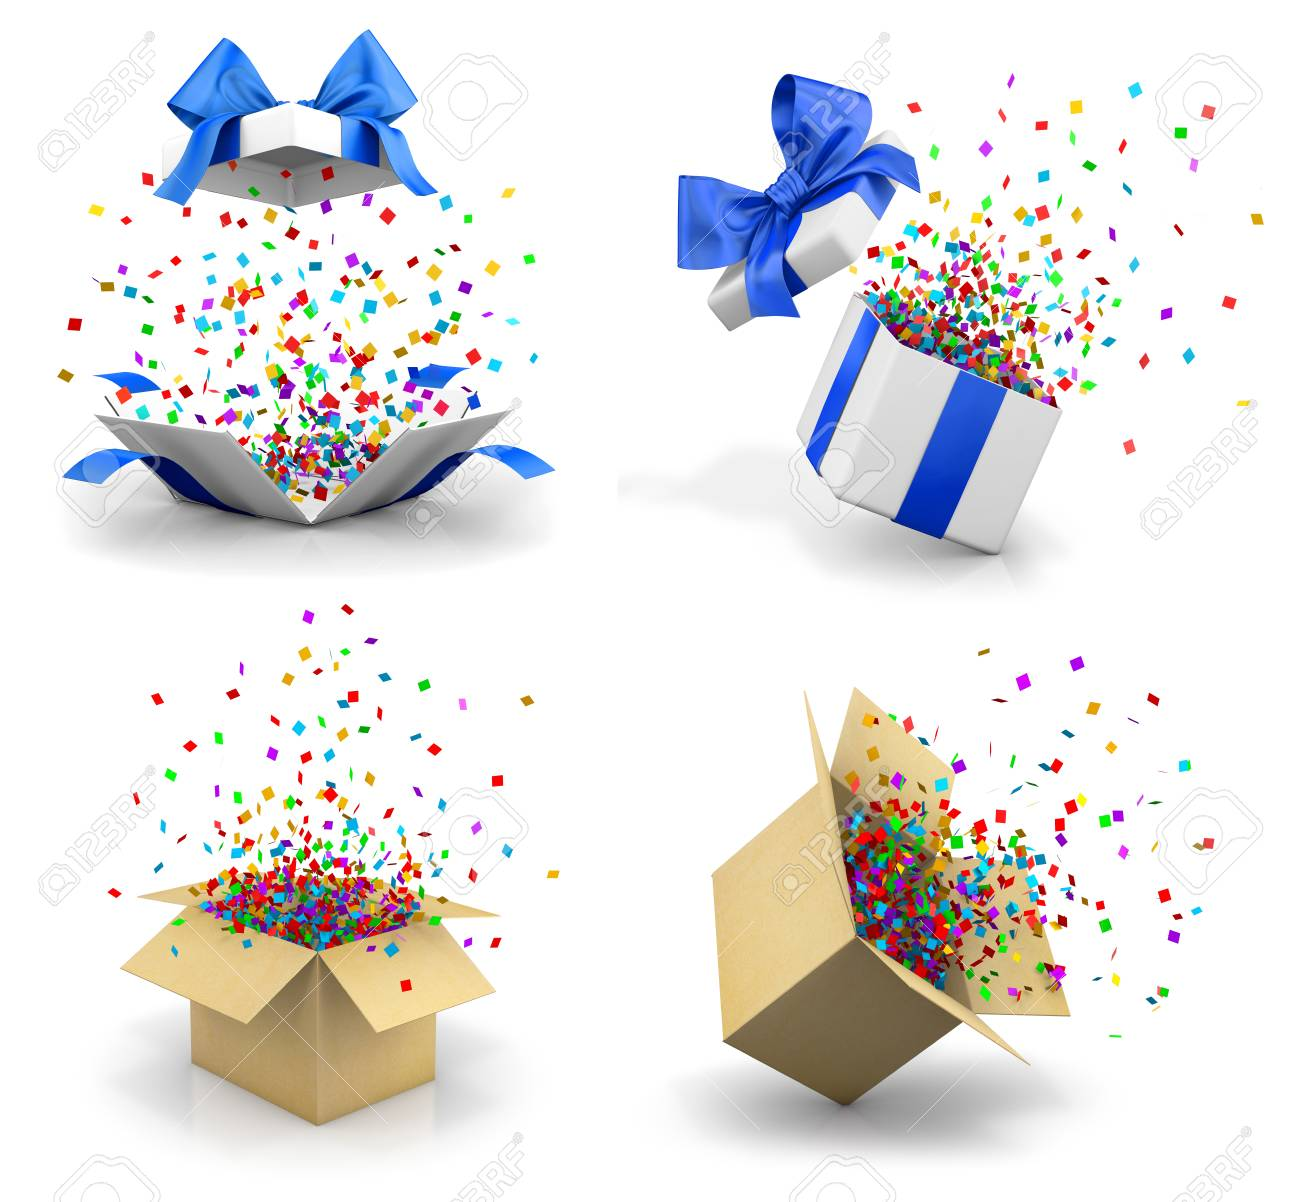 open gift box for merry christmas new years day open gift boxes explode emitting